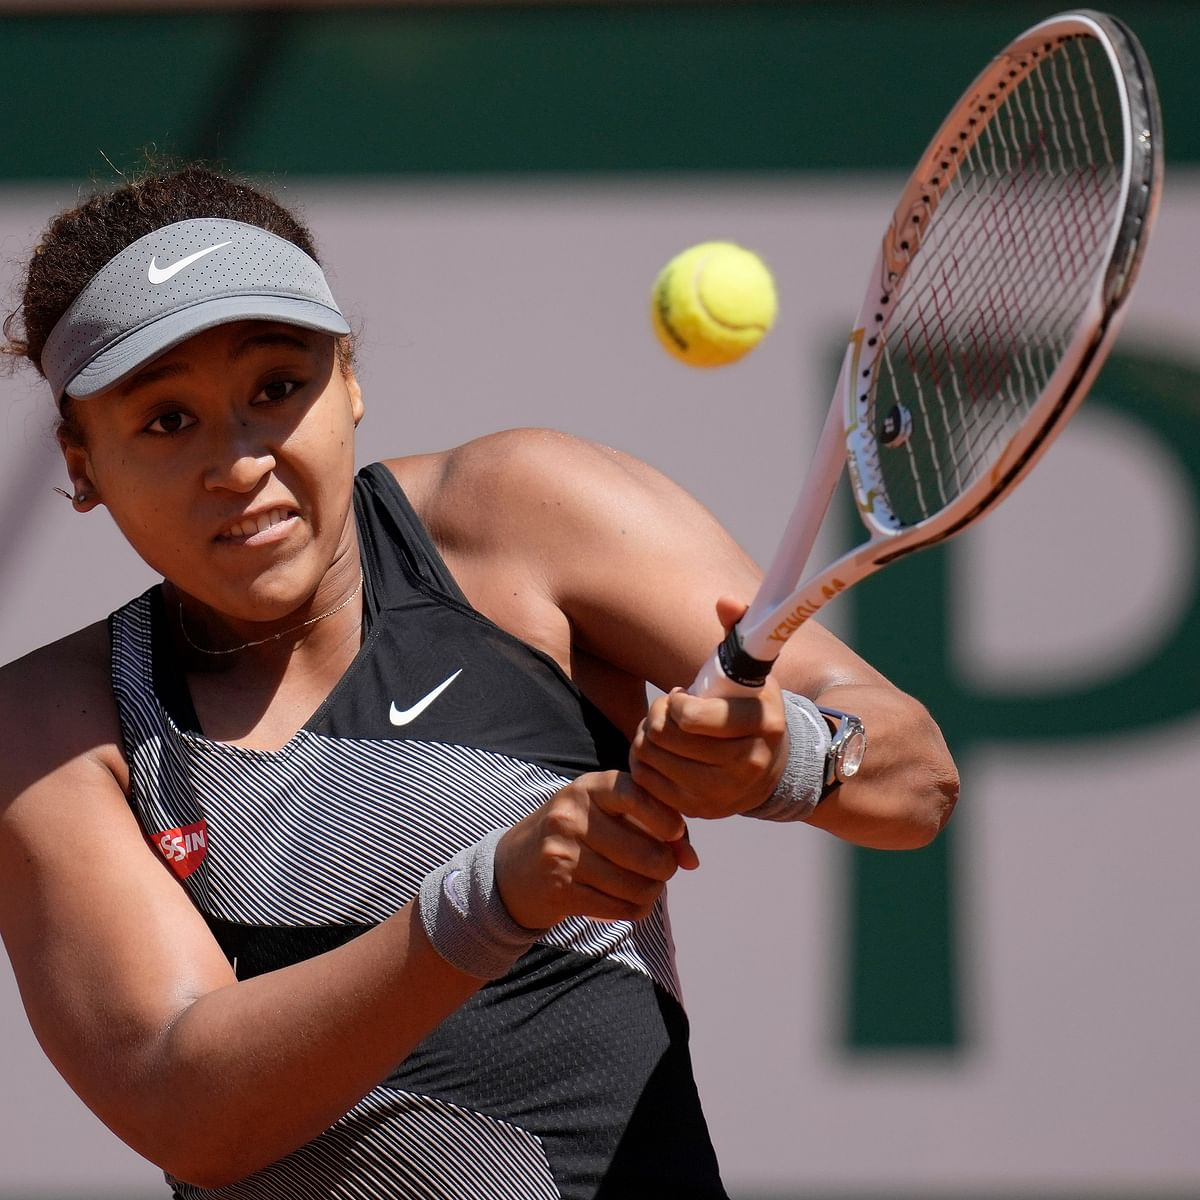 Naomi Osaka withdraws from French Open amid furore over media boycott - Here's what's happening